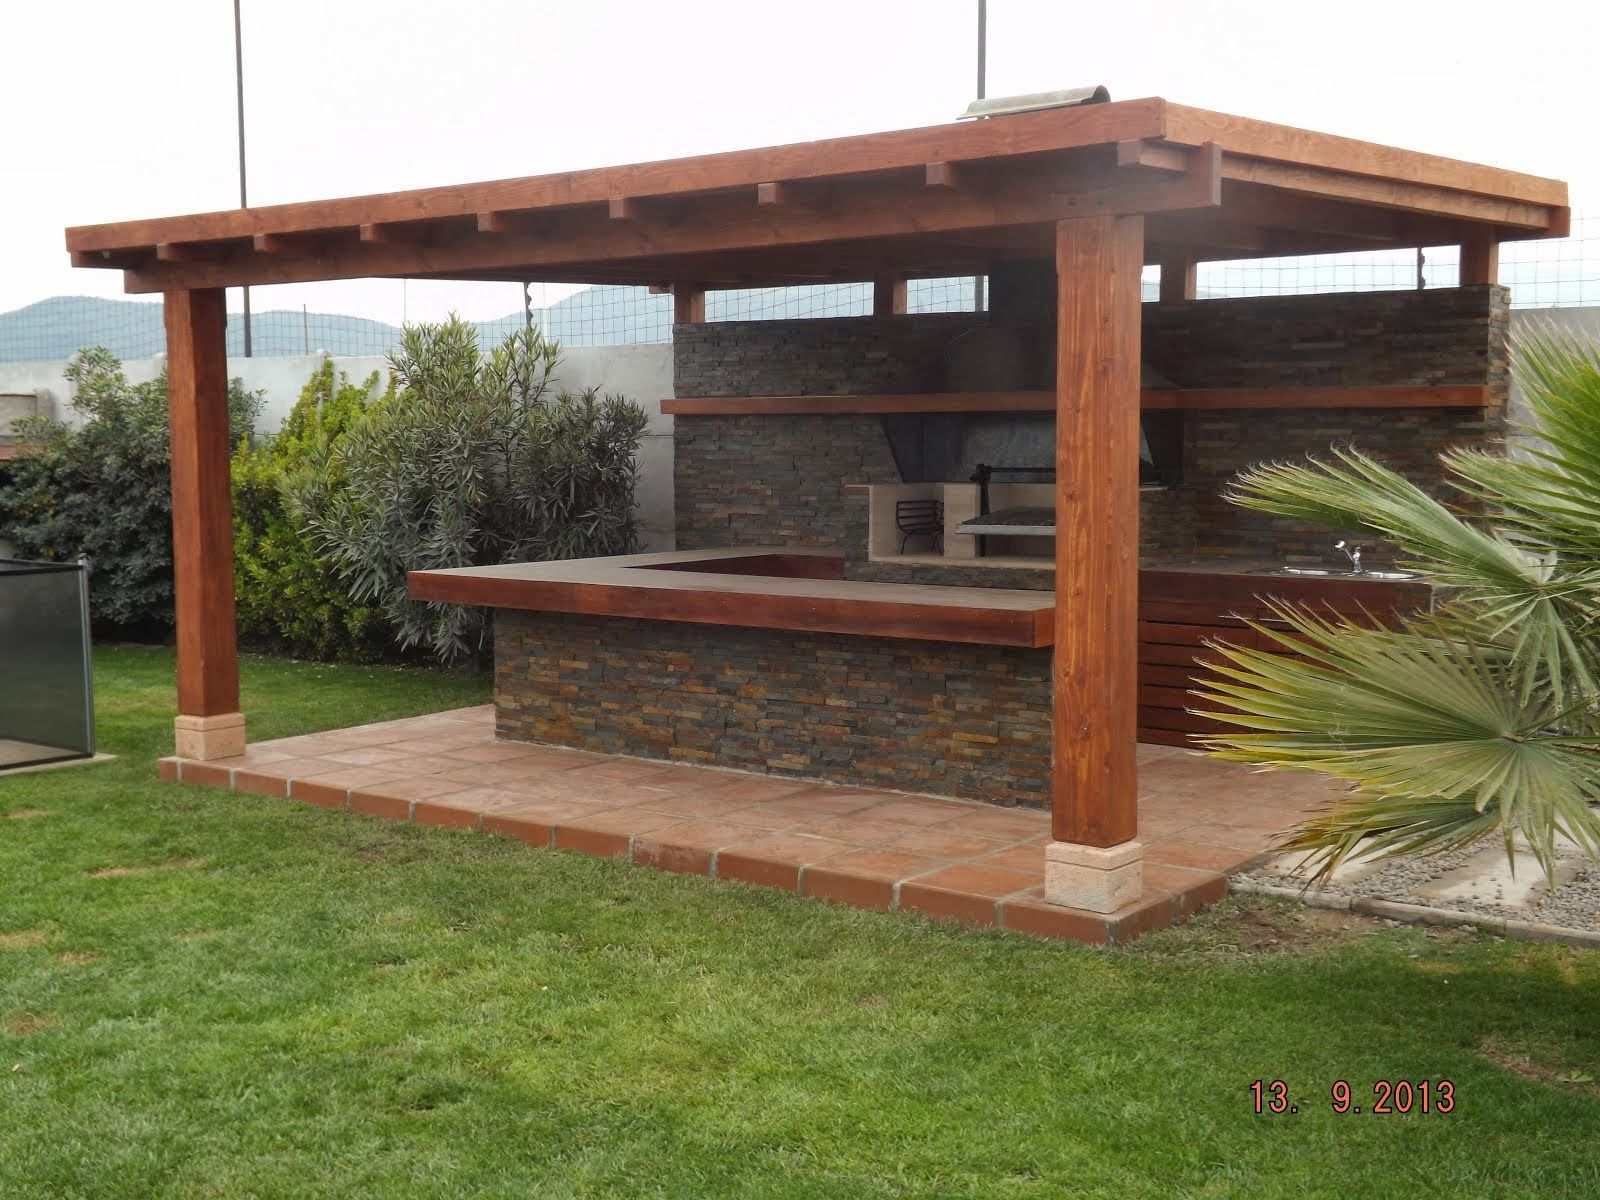 Quincho gonzalez bar pinterest barbacoa patios and - Casas rusticas con jardin ...